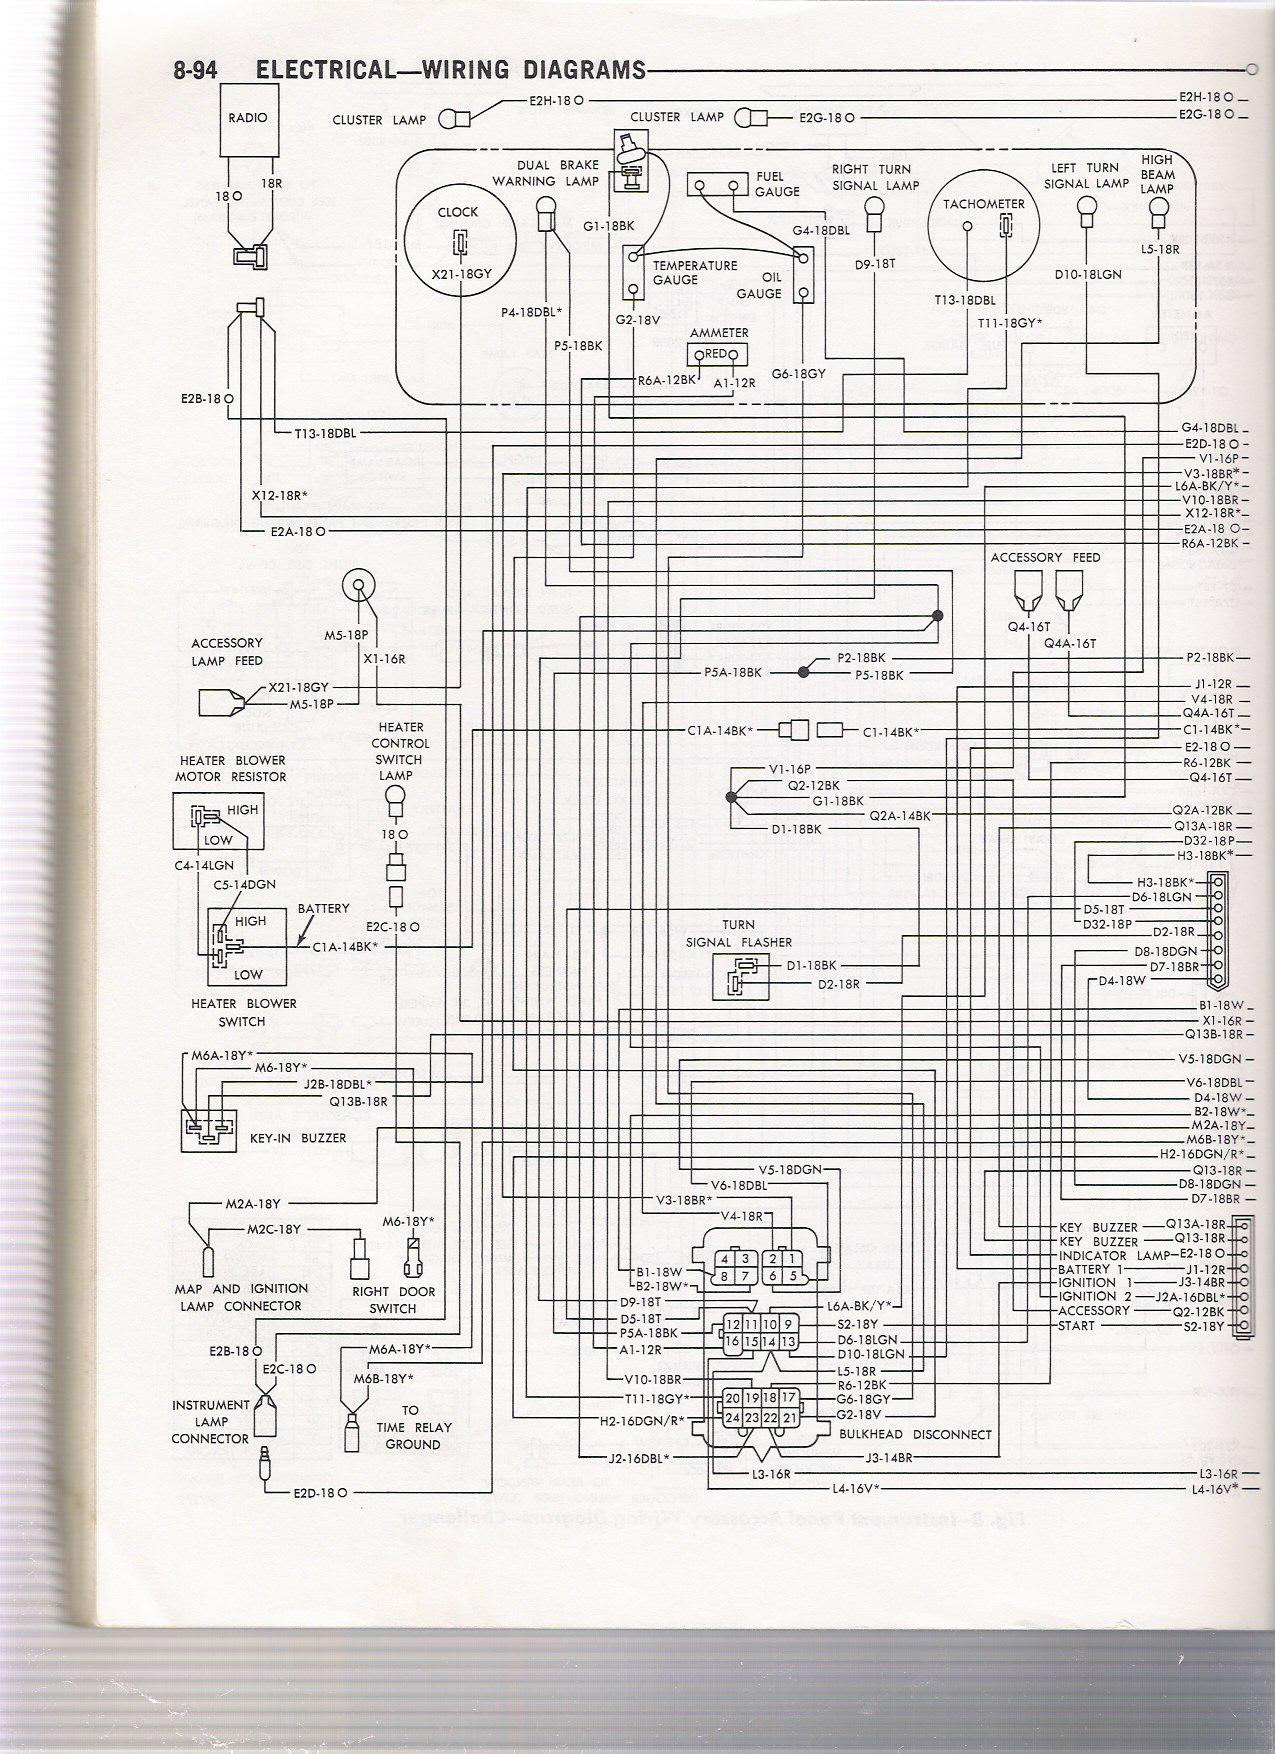 Blinker Tach Chevelle Wiring Diagram 250 Scooter Wiring Diagram Begeboy Wiring Diagram Source